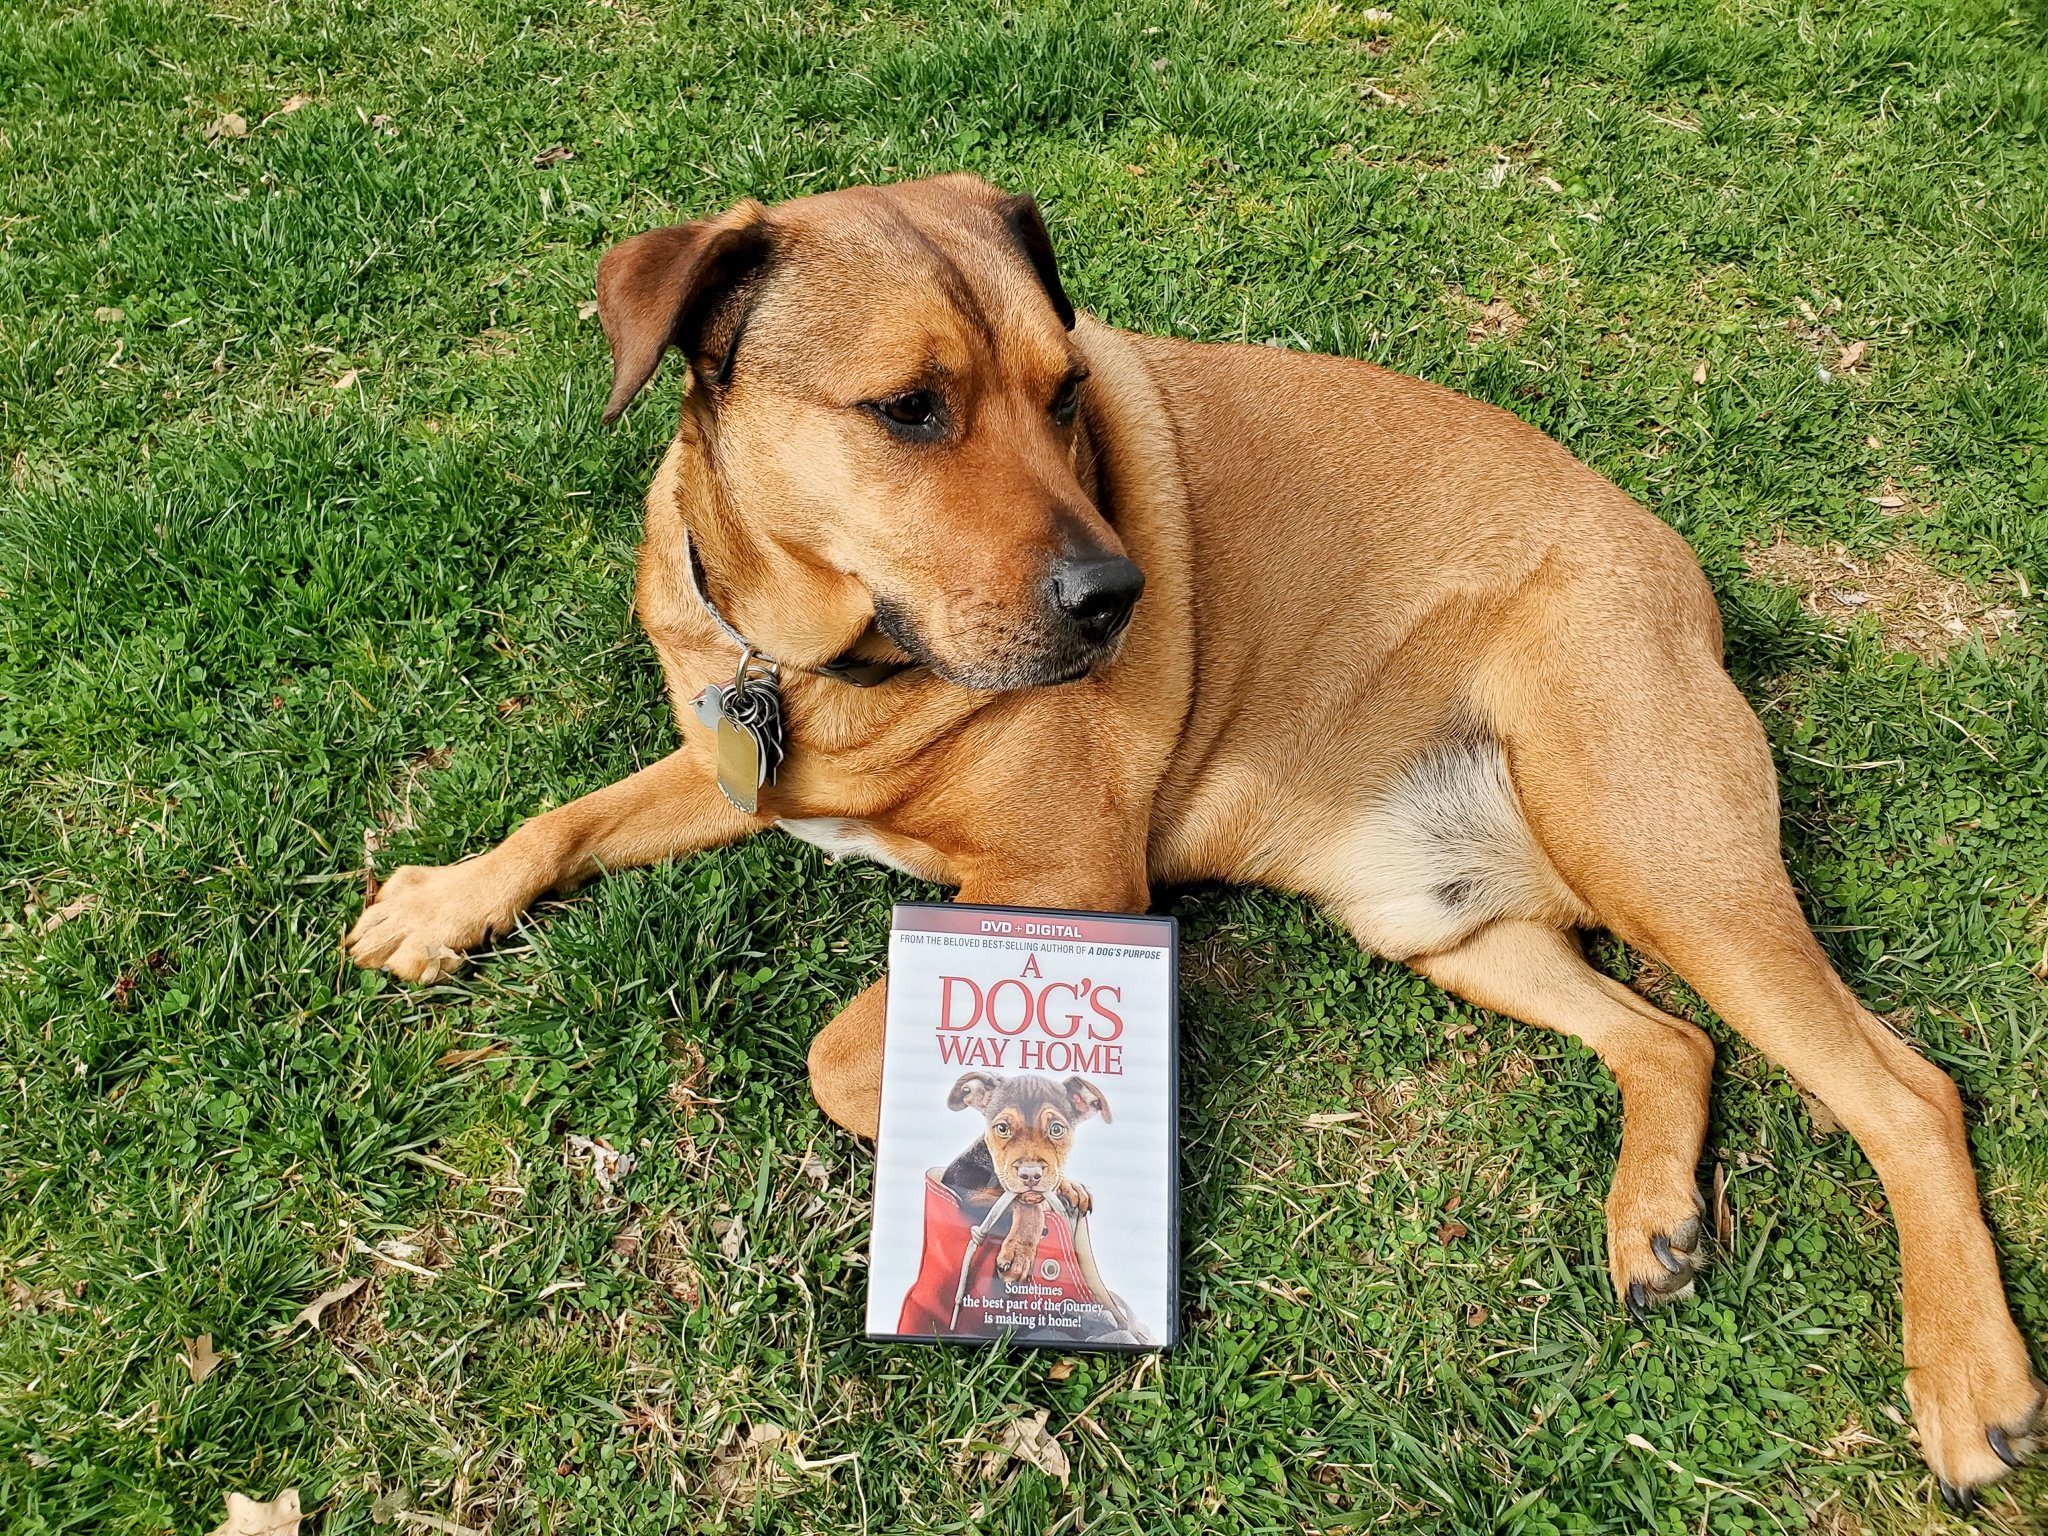 A Dogs Way Home DVD Release Beau. A Dog's Way Home Film is now available on DVD and Digital everywhere. This touching film shares Bella's heartwarming adventure as she embarks on an epic 400-mile journey back home.